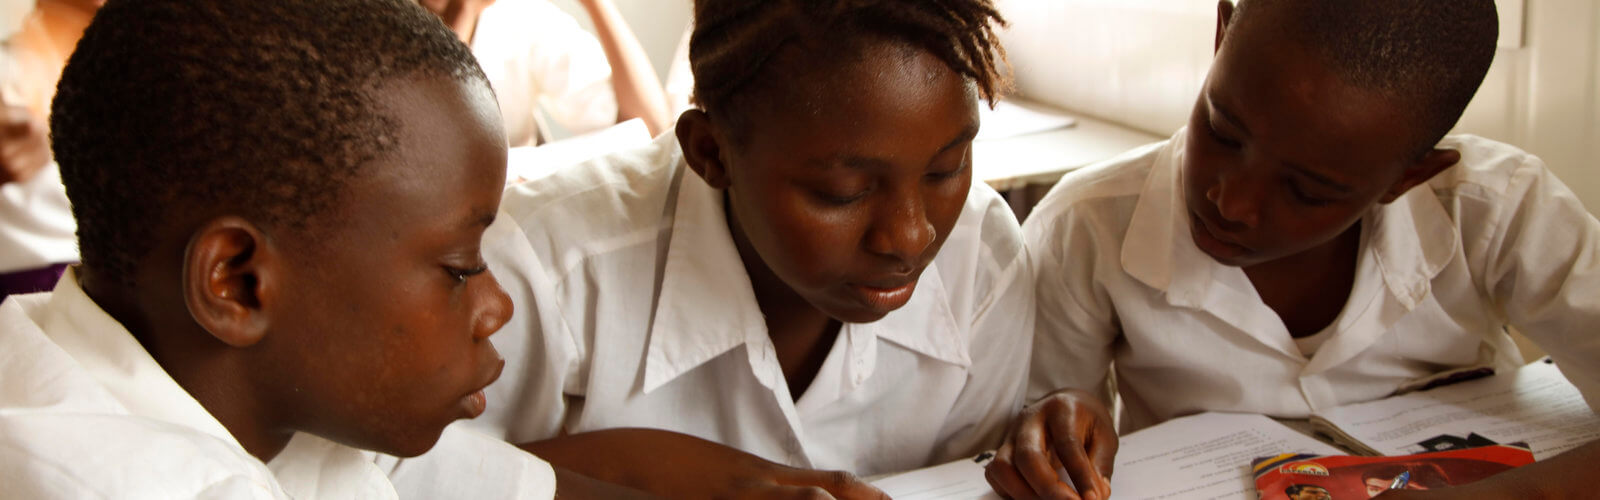 R4D is working with Rising Academy Network to improve student literacy incomes using adaptive learning and experimentation. Rising Academy Network and R4D's Learning Lab team implement adaptive learning experiments in three Junior Secondary Schools in Freetown, Sierra Leone.